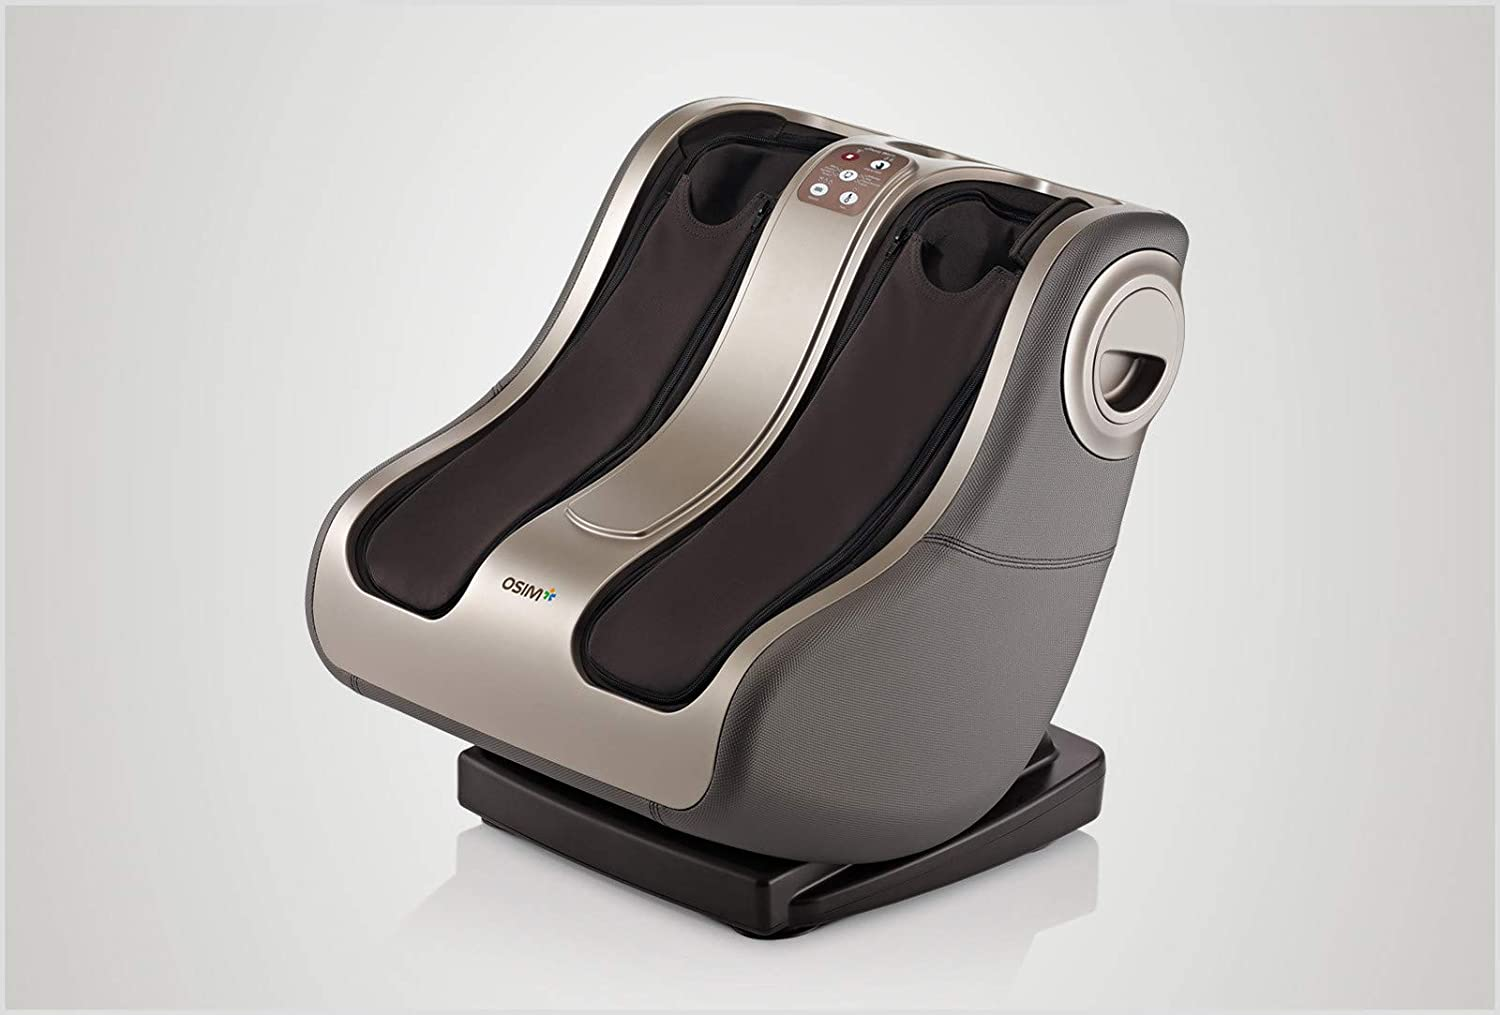 Amazon.com: OSIM uPhoria Warm 5-in-1 Deep-Tissue Shiatsu Foot and Calf Massager with Heat Therapy | Electric Power Kneading and Reflexology | Strongest Foot Massager | Improve Blood Circulation and Stress Relief: Health